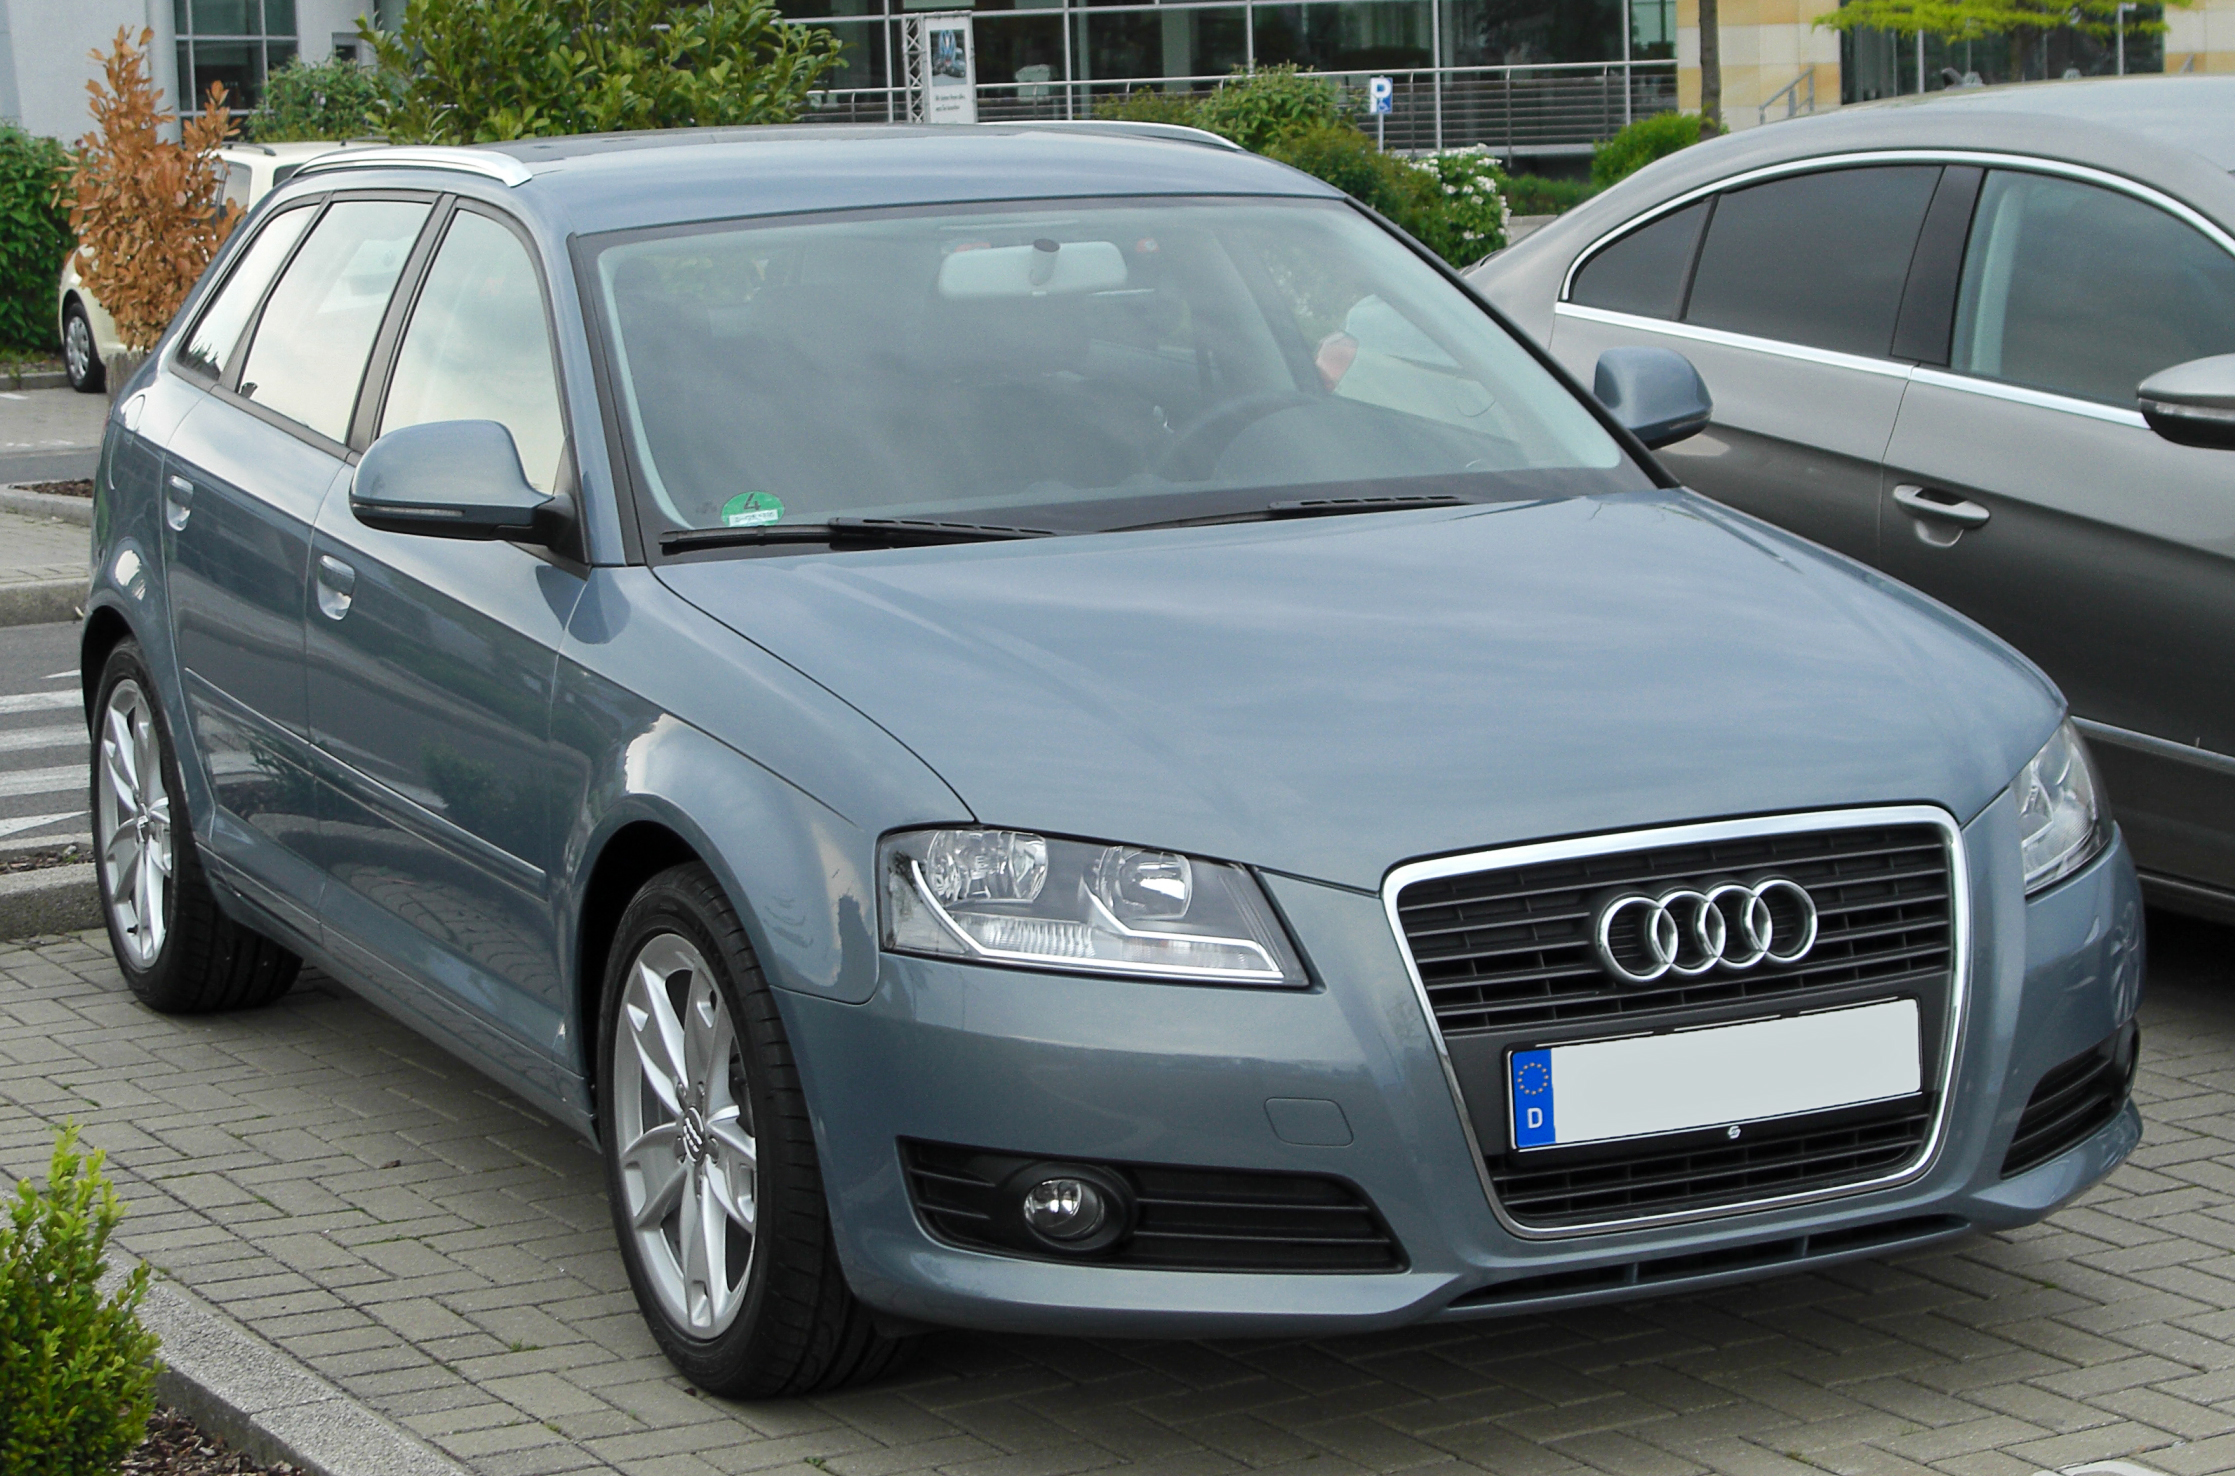 Pictures of audi a3 sportback (8p) 2012